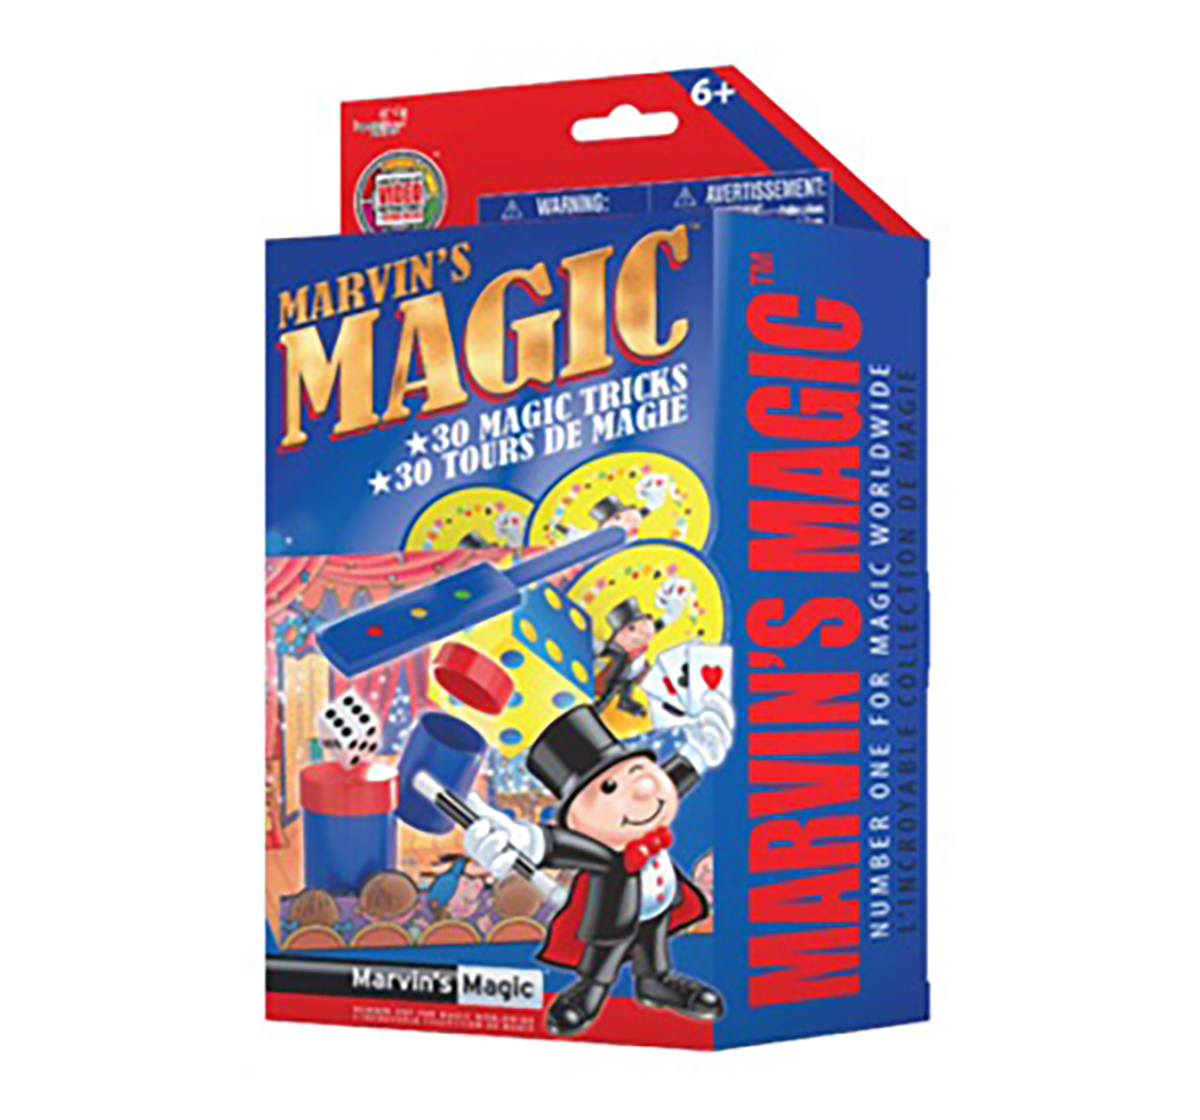 Marvin's Magic | Marvin'S Magic Made Easy 30 Tricks Set 3 Impulse Toys for Kids age 6Y+